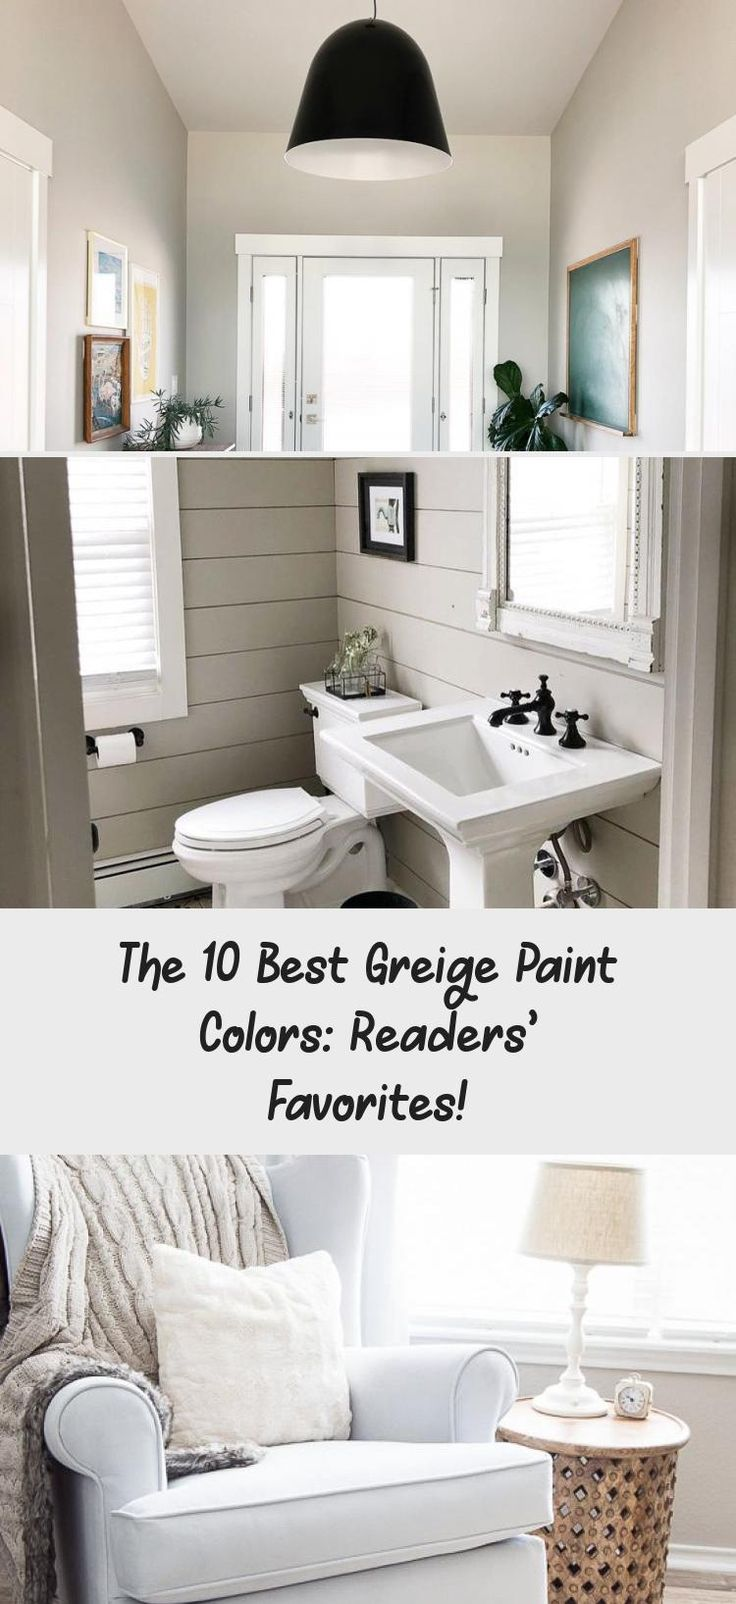 the 10 best greige paint colors readers favorites on 10 most popular paint colors id=26793